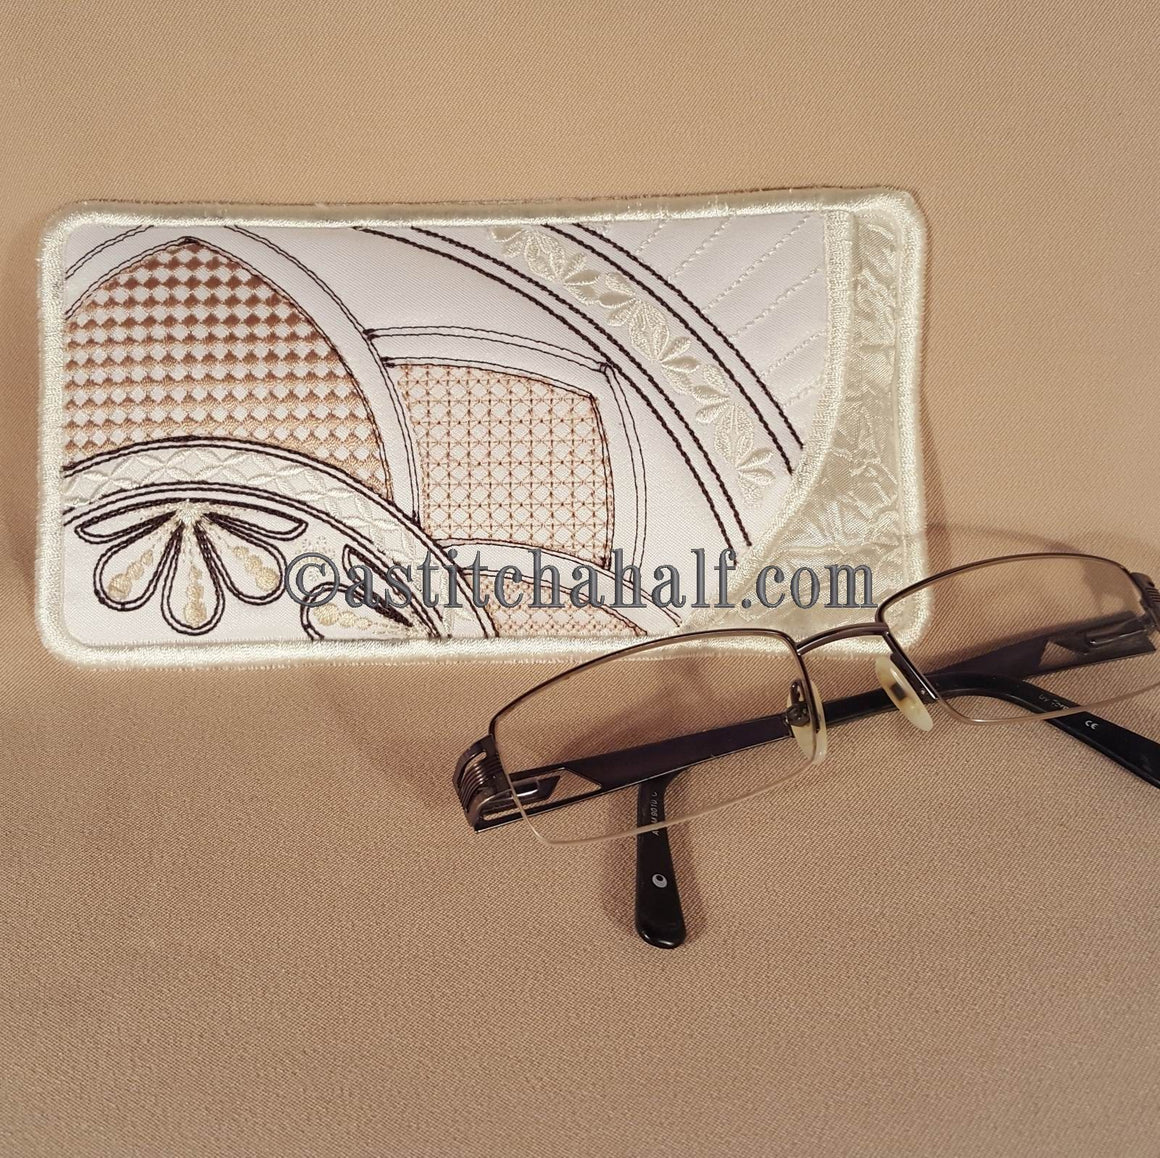 Beautiful Morning Eyeglass Case - astitchahalf